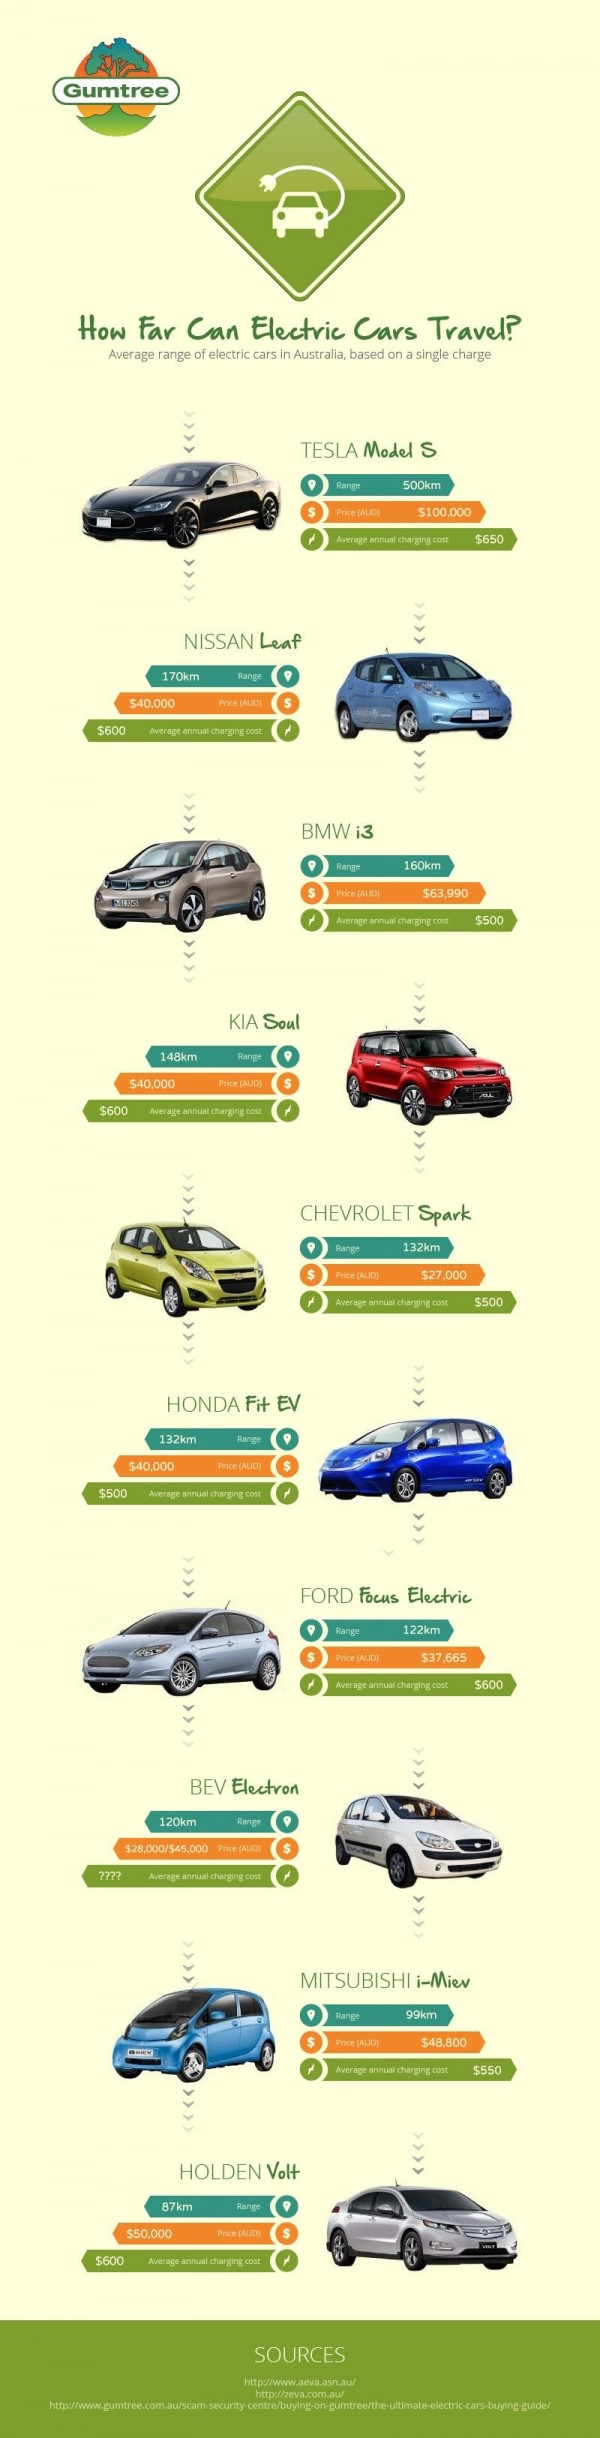 Electric Cars In Australia Infographic